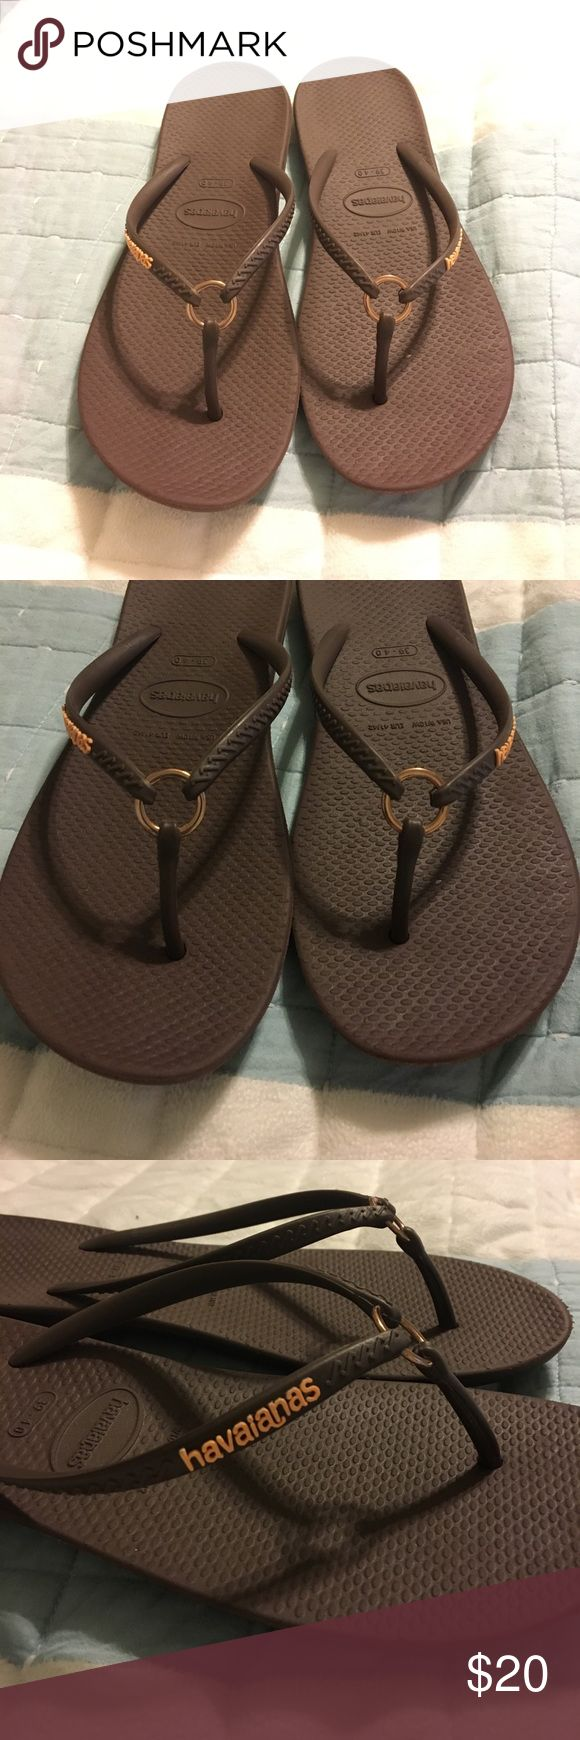 🔥FLASH SALE🔥Havaianas Brown Rose Gold Sandals Havaianas flip-flop sandals. Dark brown in color with a rose gold metal accent in the front worn two times Havaianas Shoes Sandals